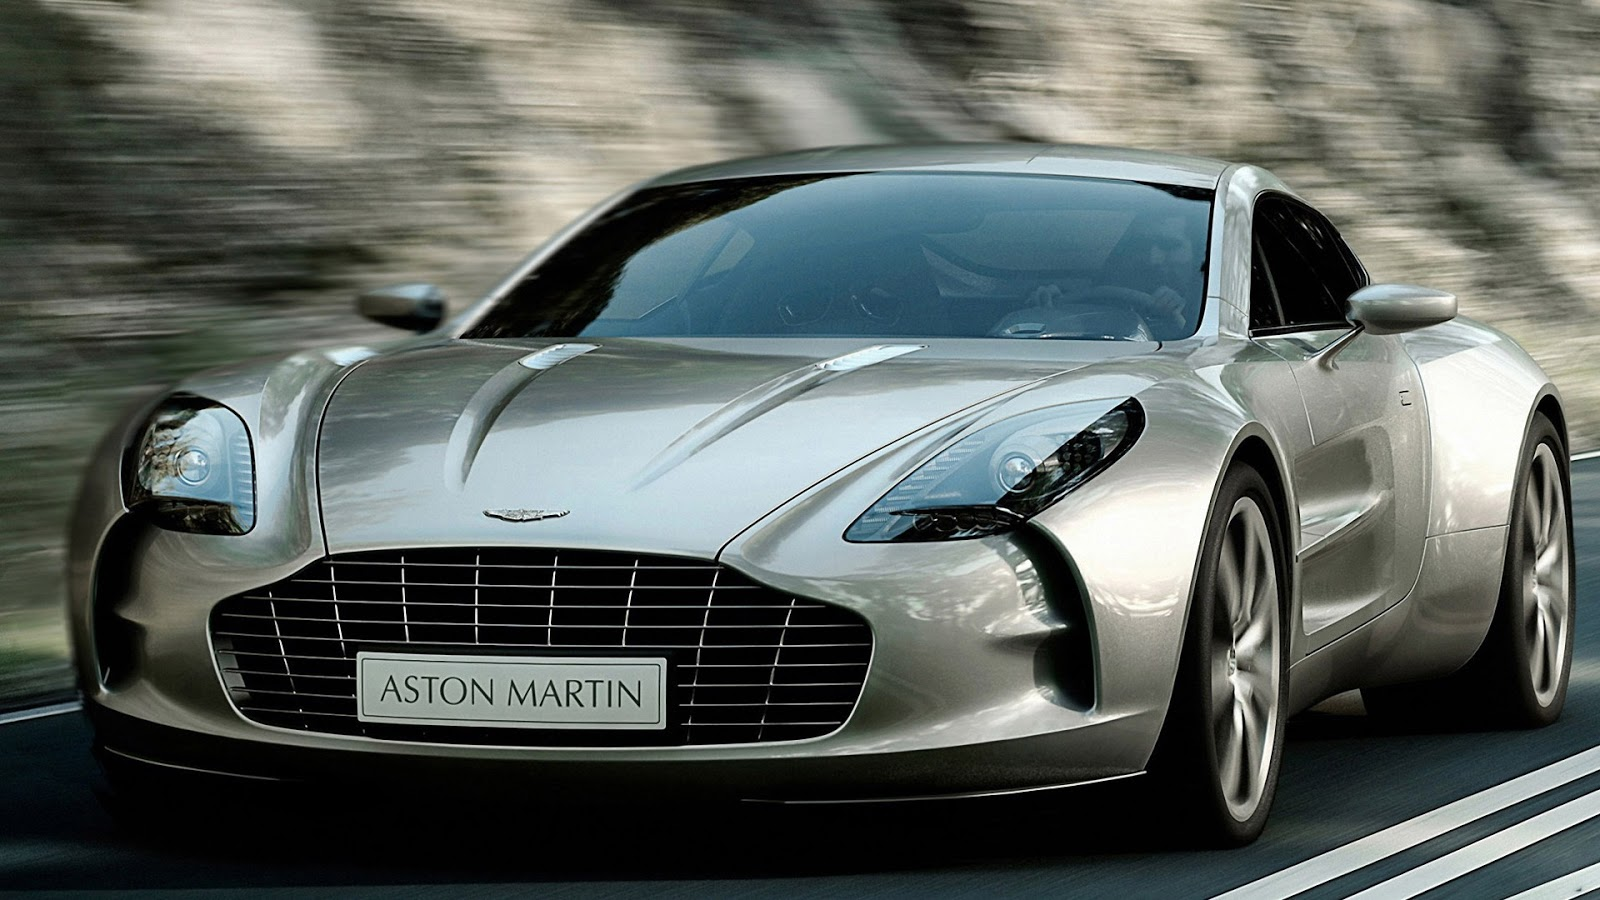 All New Branded Cars Images And Wallpapers Photos